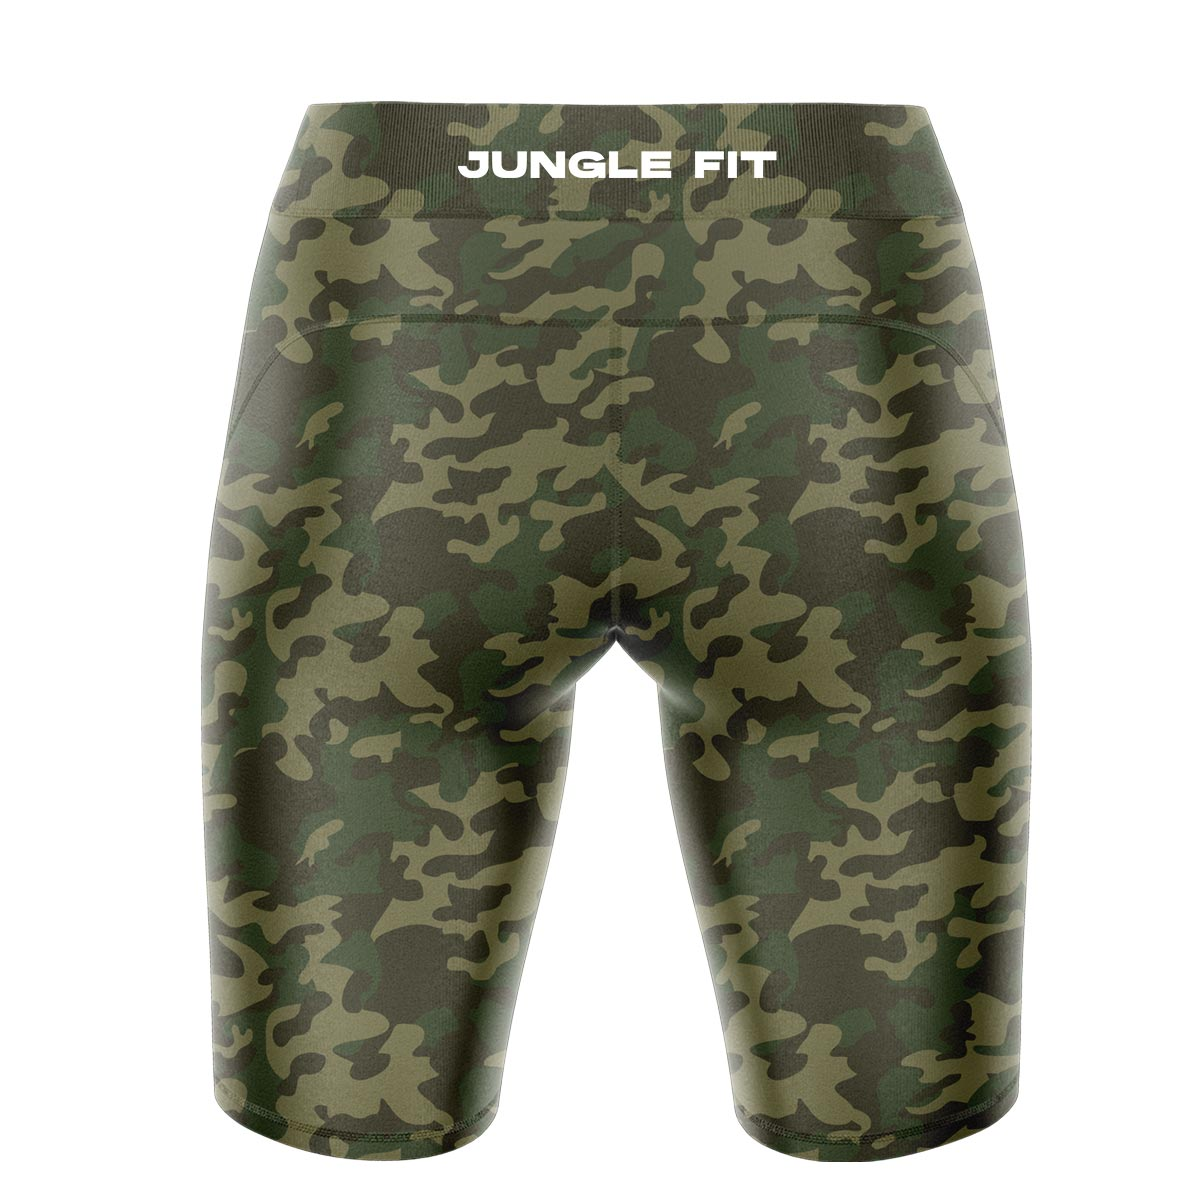 Green Camo Yoga Shorts